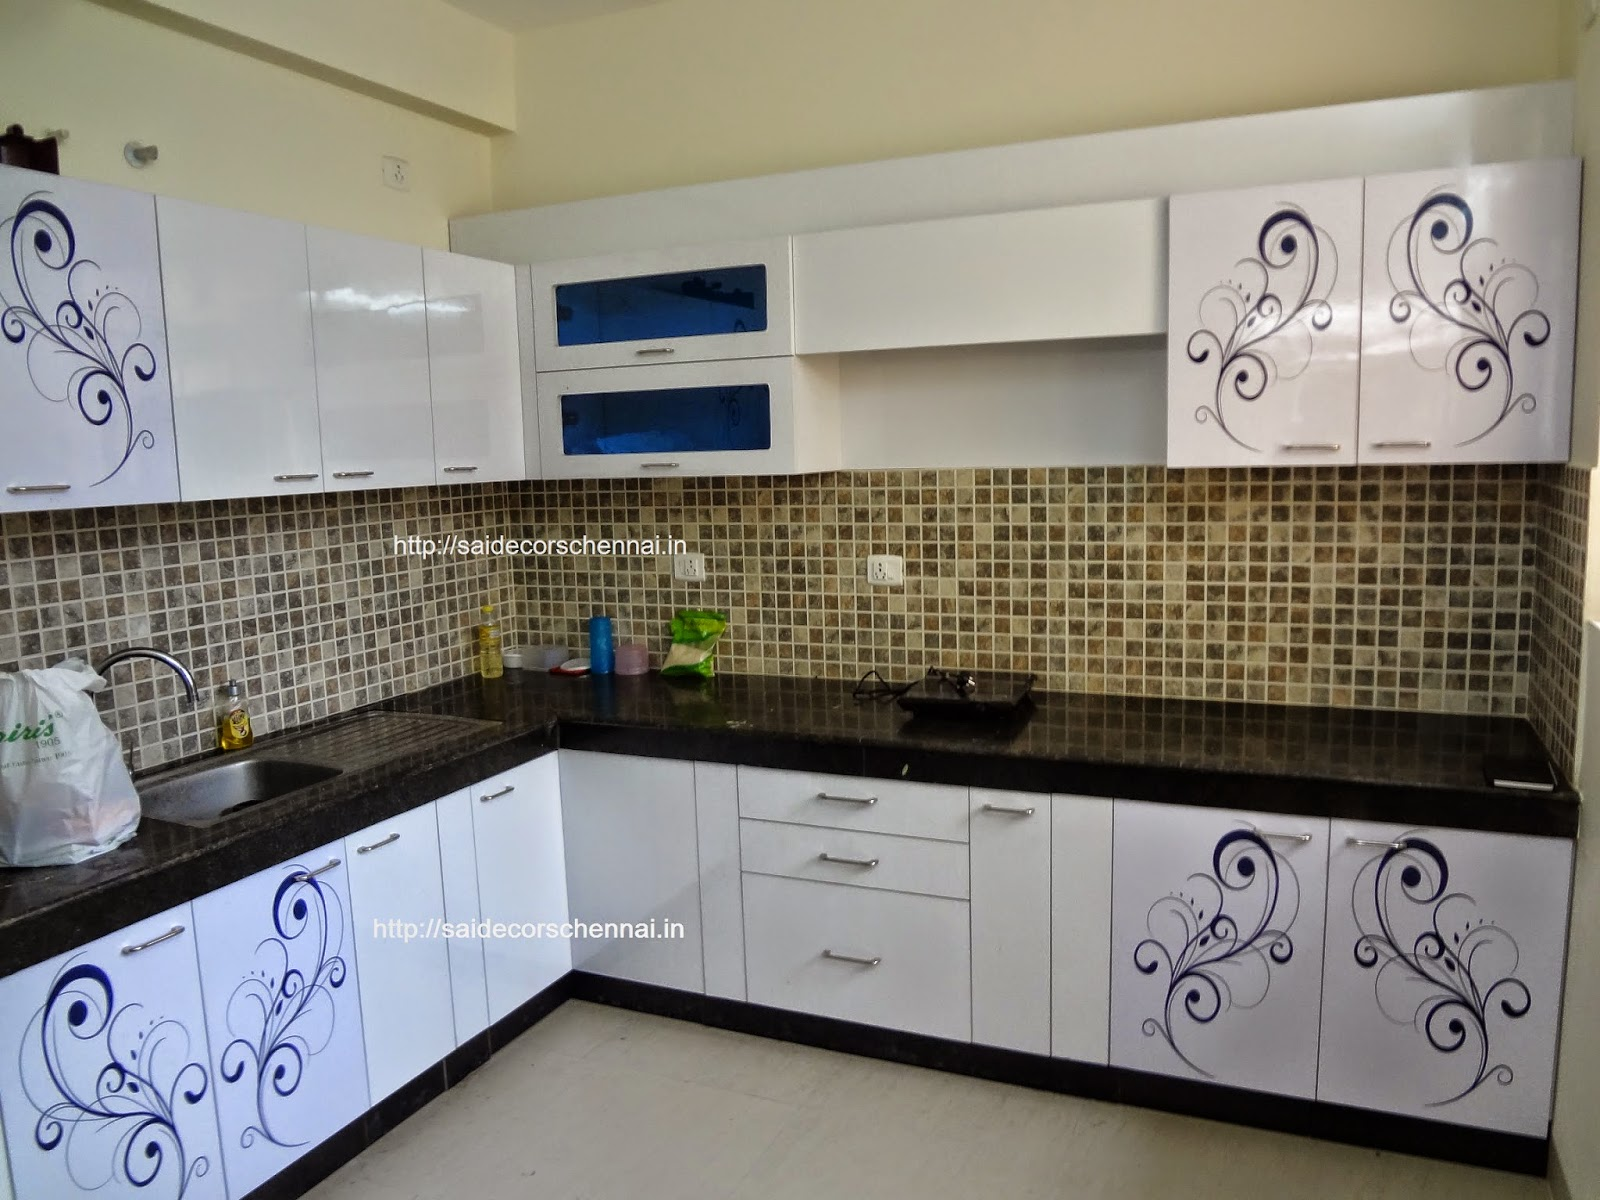 modular kitchen images / photos / galleries and price